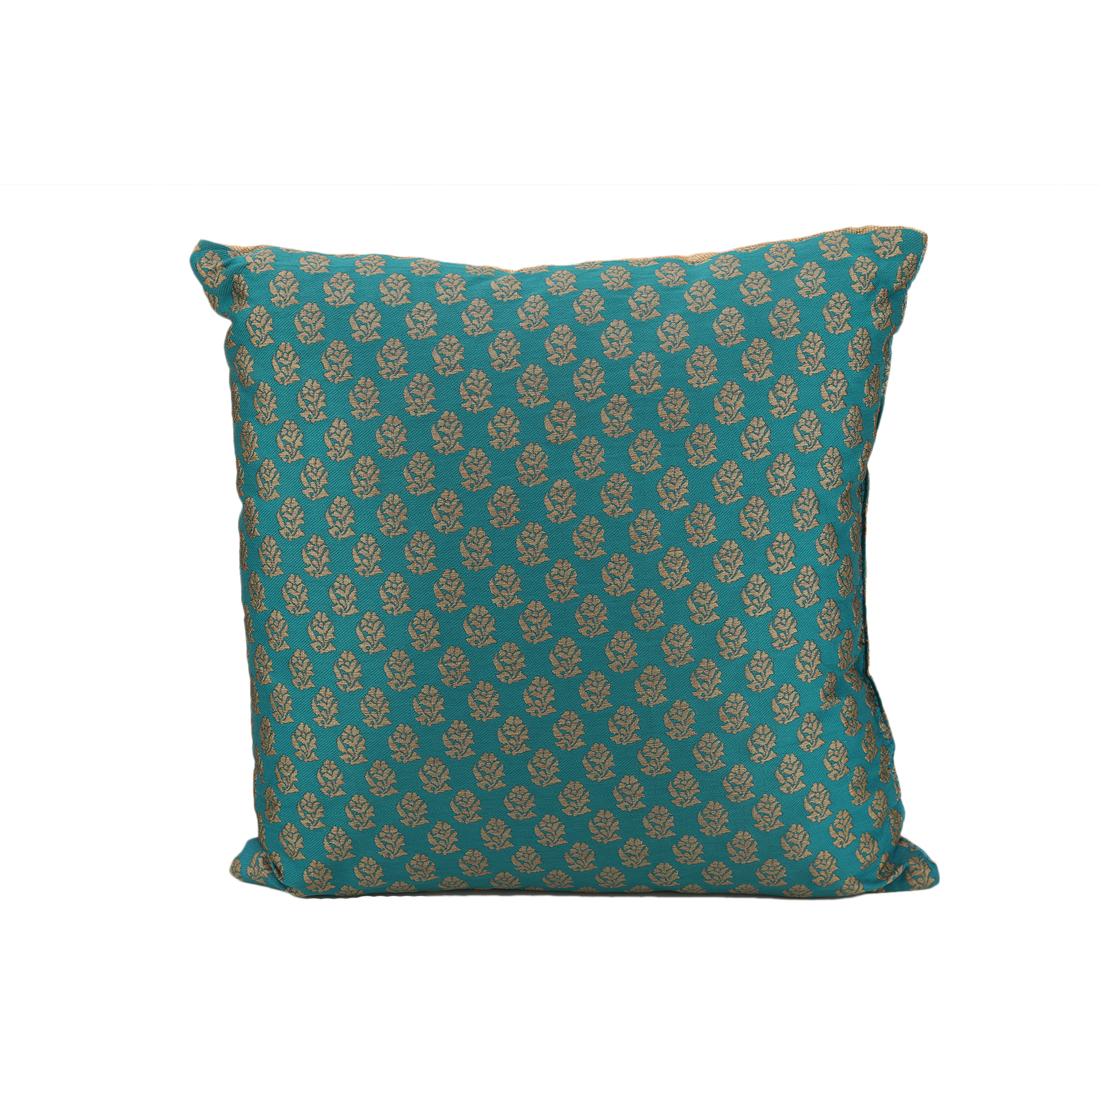 Miraya Polyester Filled Cushions in Teal Gold Colour by Living Essence